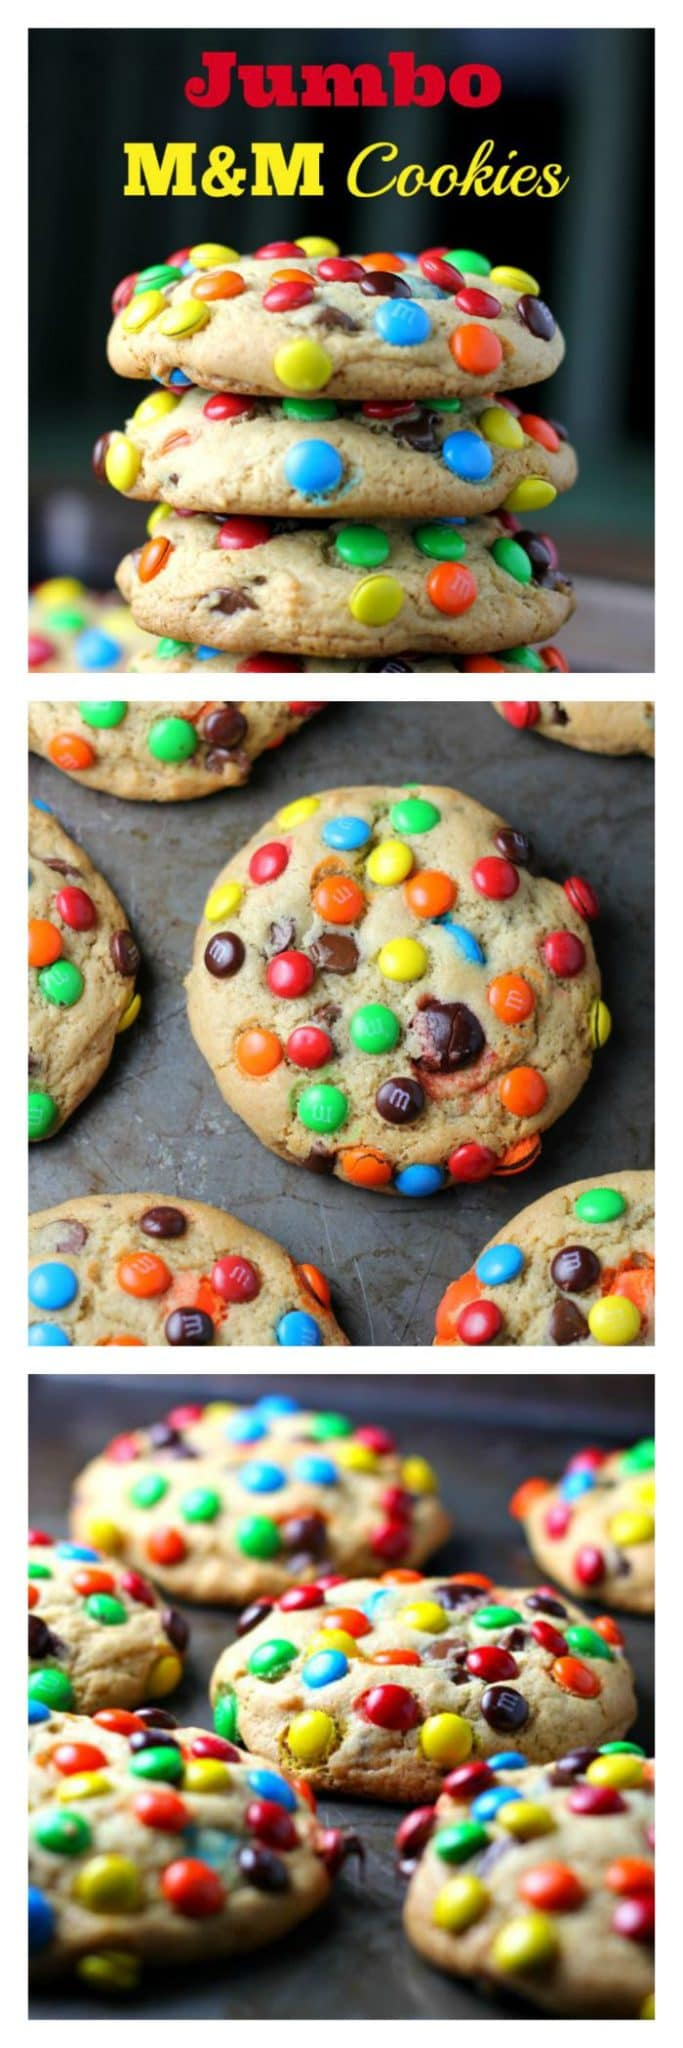 JUMBO 'Soft Batch' M&M  Cookies - JUMBO 'Soft Batch' M&M  Cookies - These rainbow JUMBO cookies have 2 secret ingredients! Pudding and butter extract. So you get, soft, thick, fluffy and buttery cookies loaded with M&Ms and chocolate chips. I think I can live with that! :)